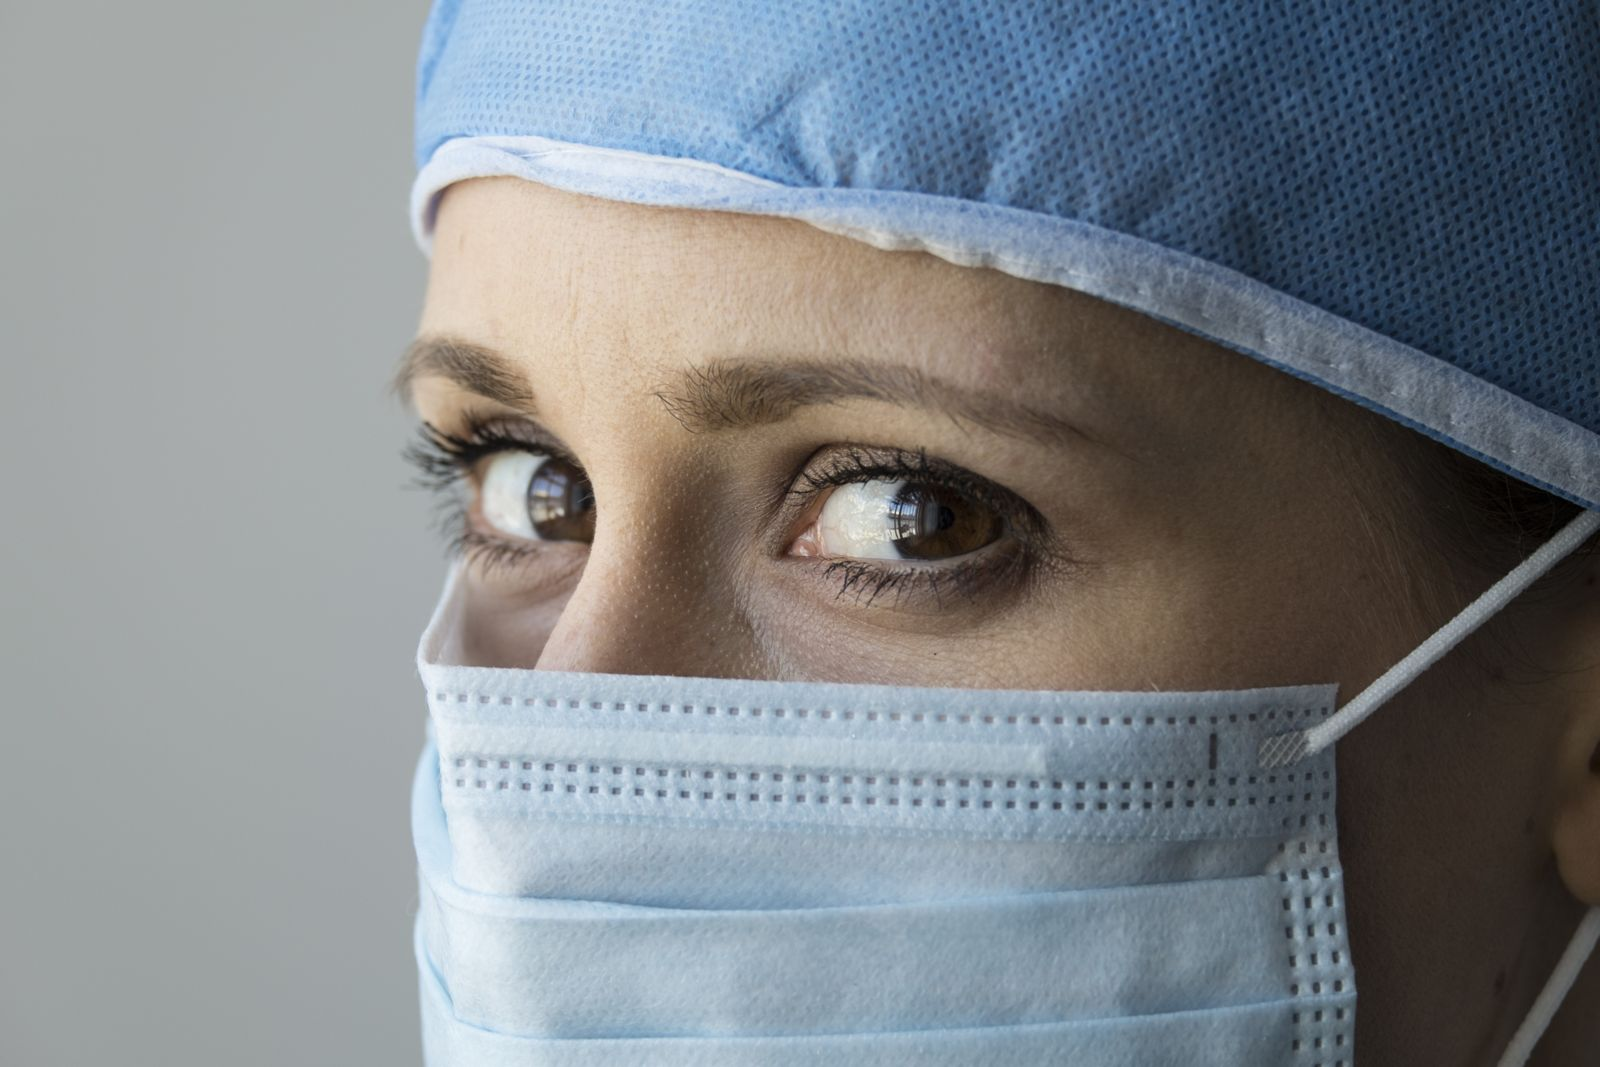 Female doctor wearing surgical mask and head covering